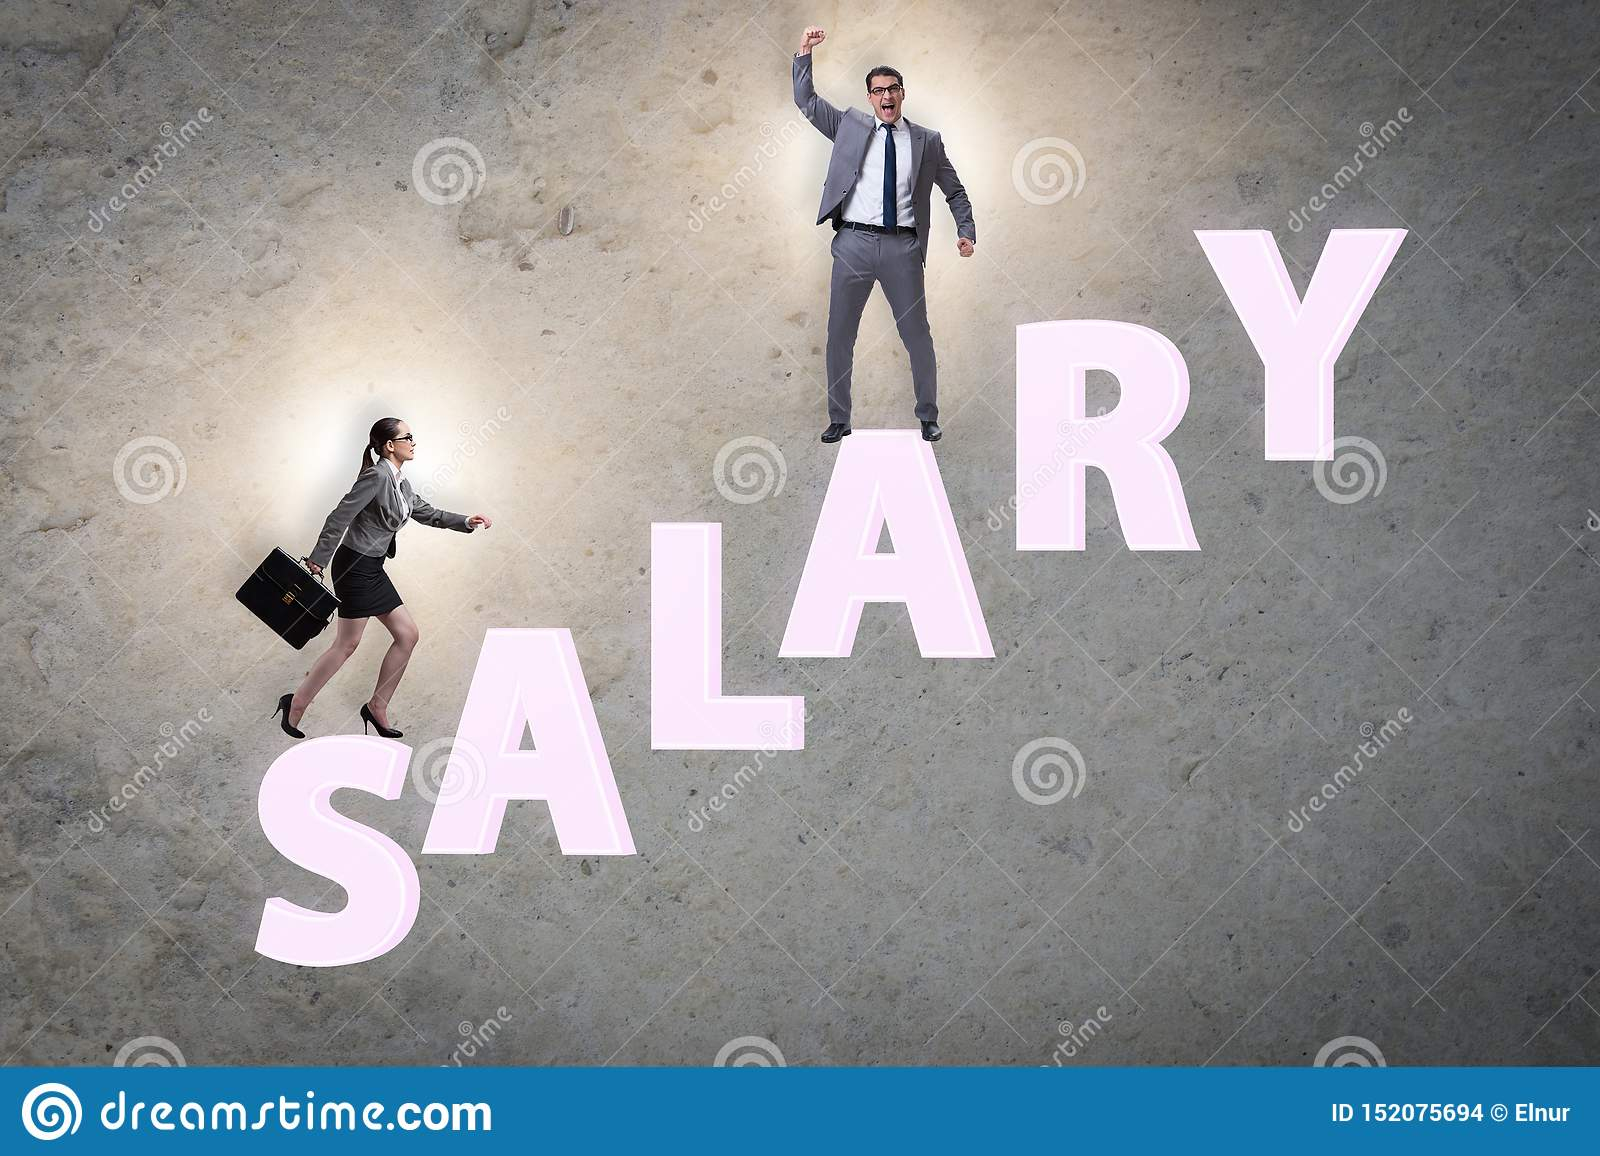 Concept of inequal salary between man and woman